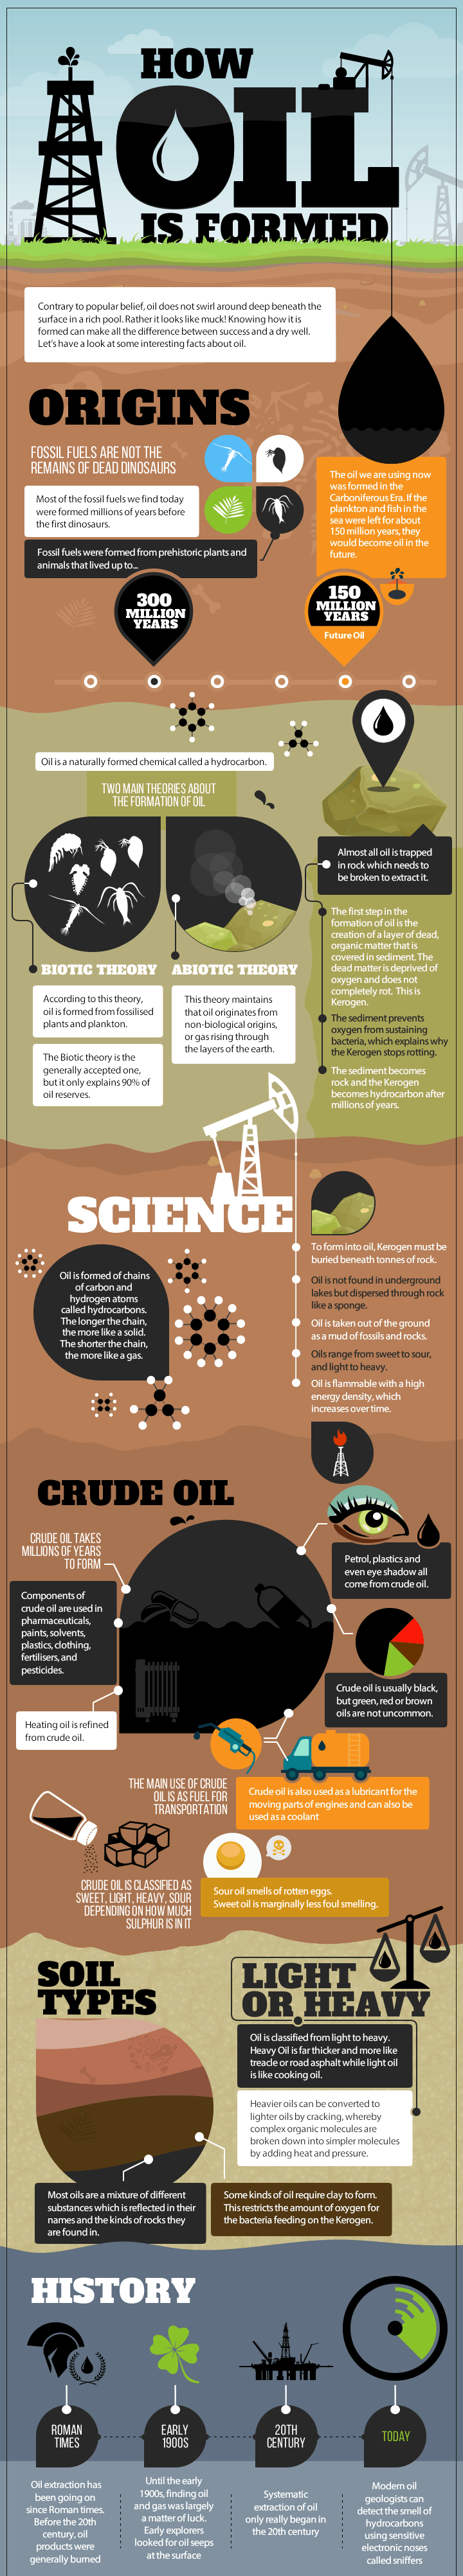 How Oil is Formed Infographic